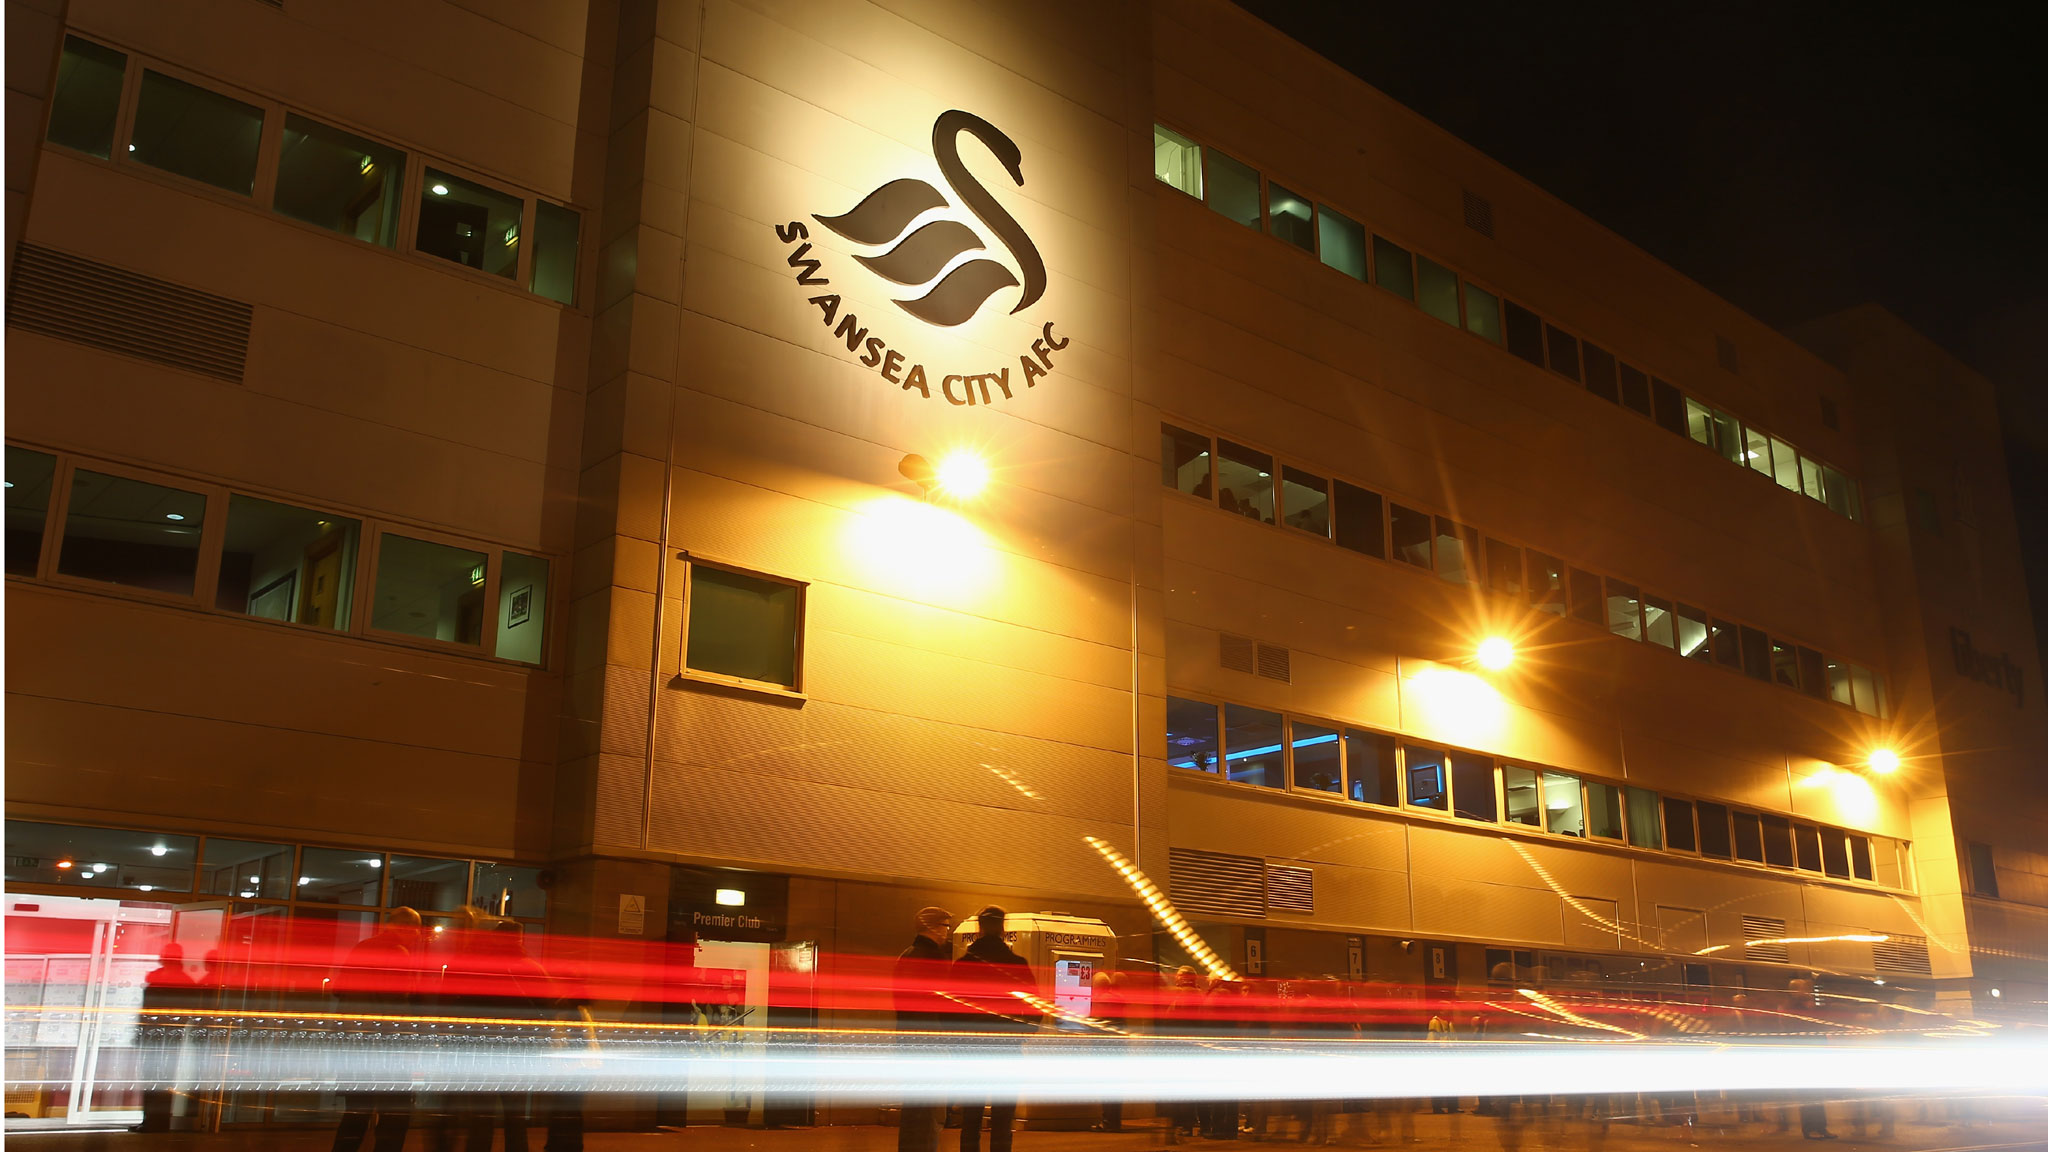 Swansea City Supporters' Trust ponders next move over share sale